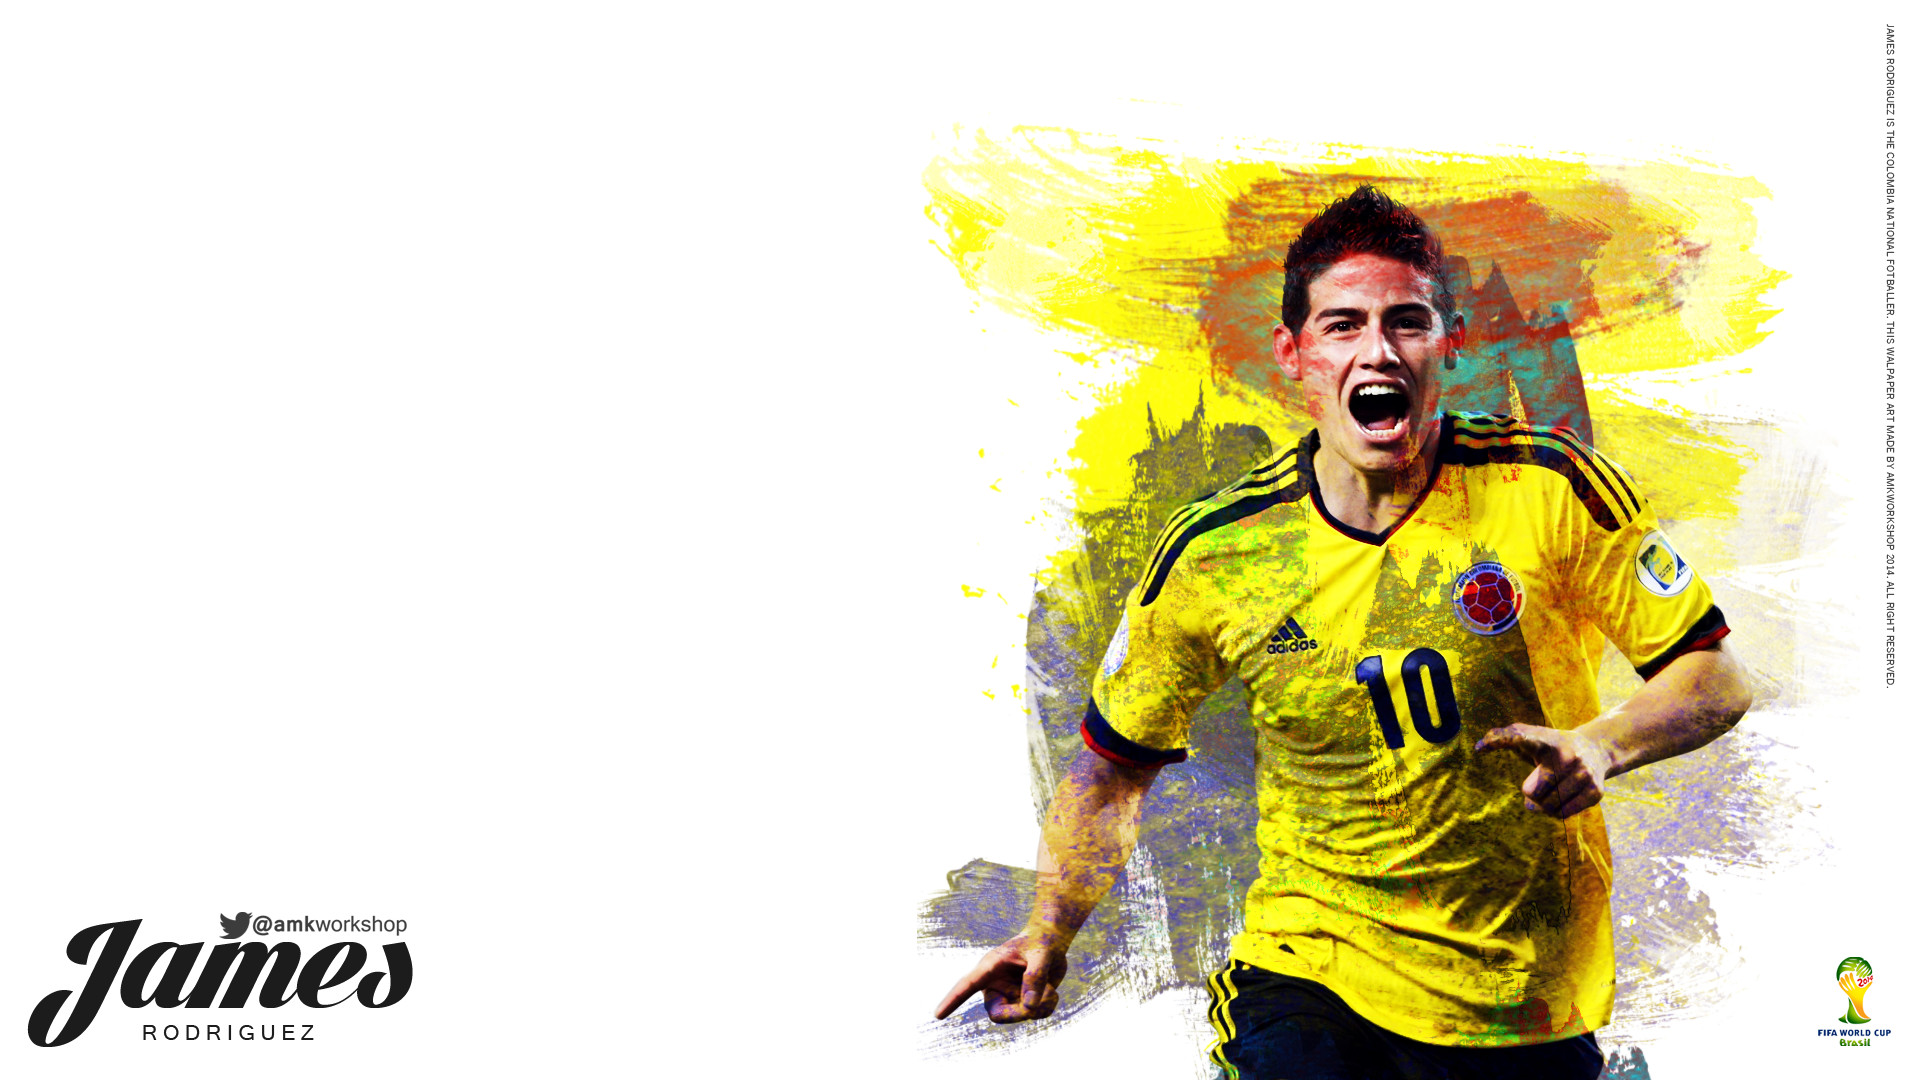 1920x1080 ... James Rodriguez Wallpapers, James Rodriguez Wallpapers by Stanford  Mcqueary, T4.Themes Backgrounds Collection